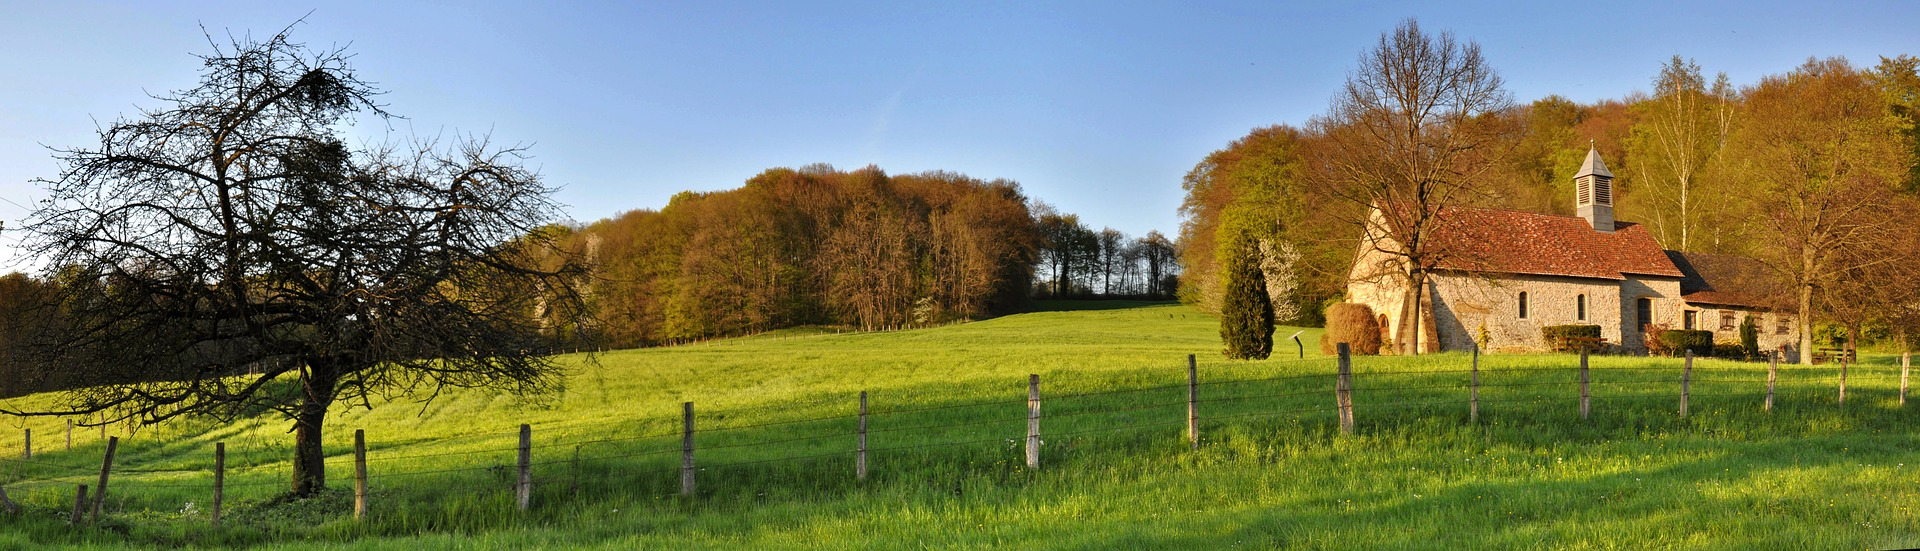 Elsasser Landschaft